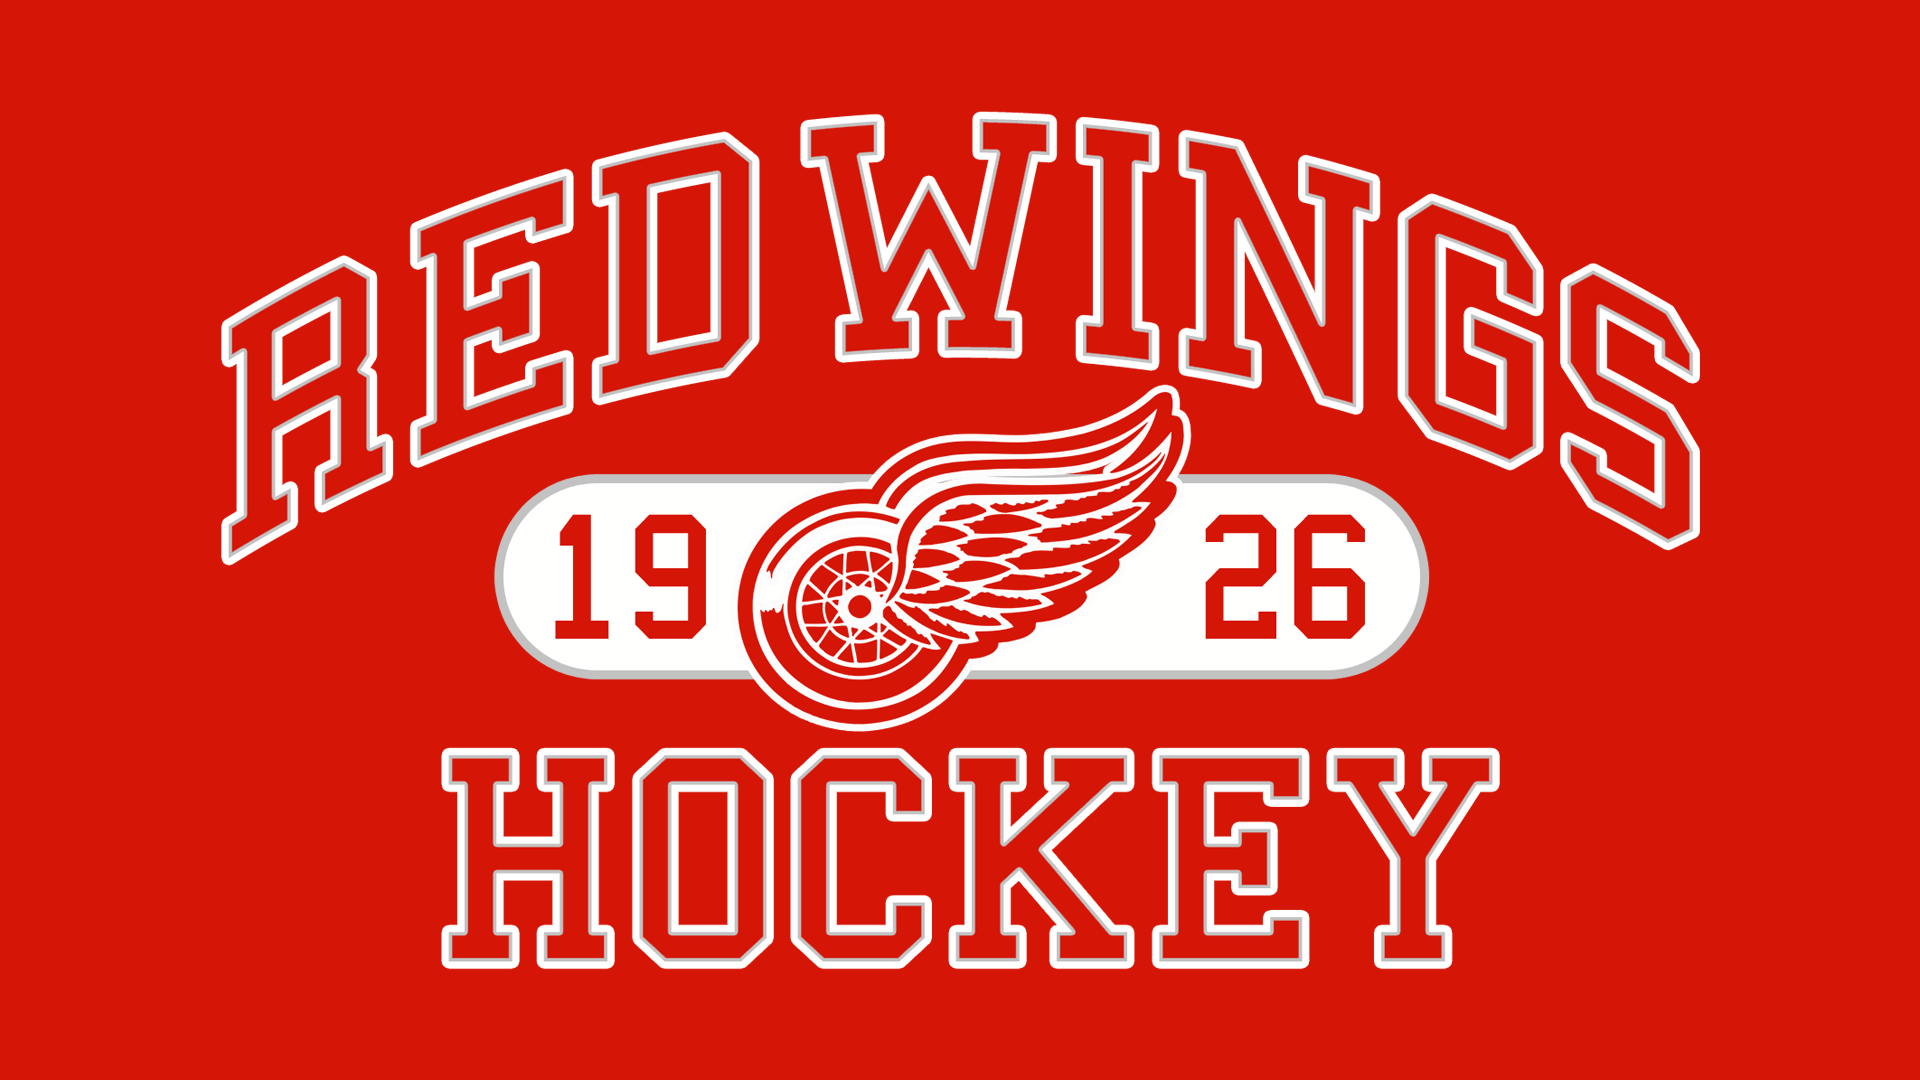 Detroit Red Wings wallpapers Detroit Red Wings background   Page 4 1920x1080